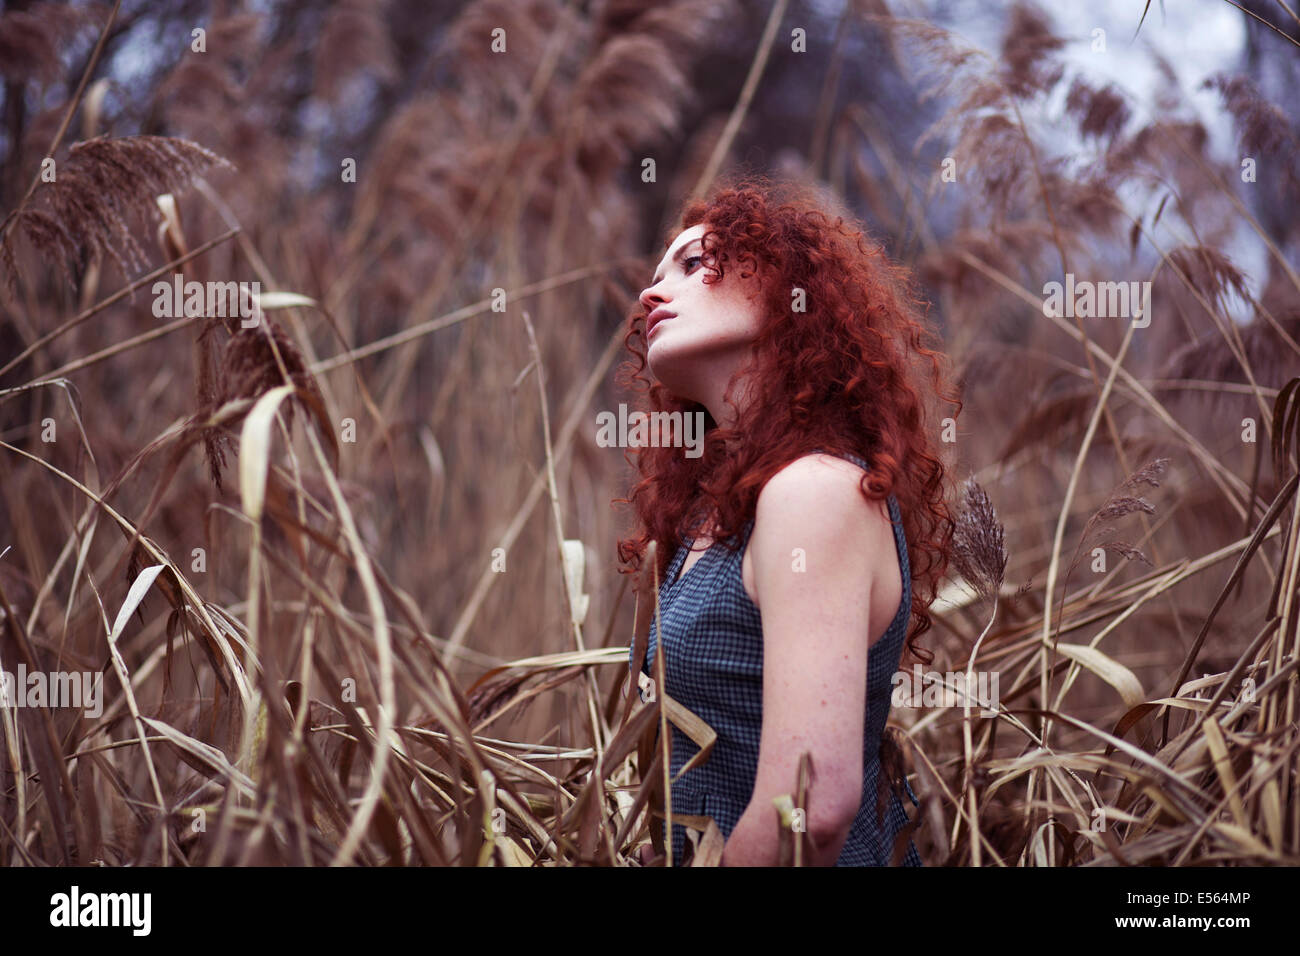 Woman with long red hair standing in the reeds, Portrait - Stock Image